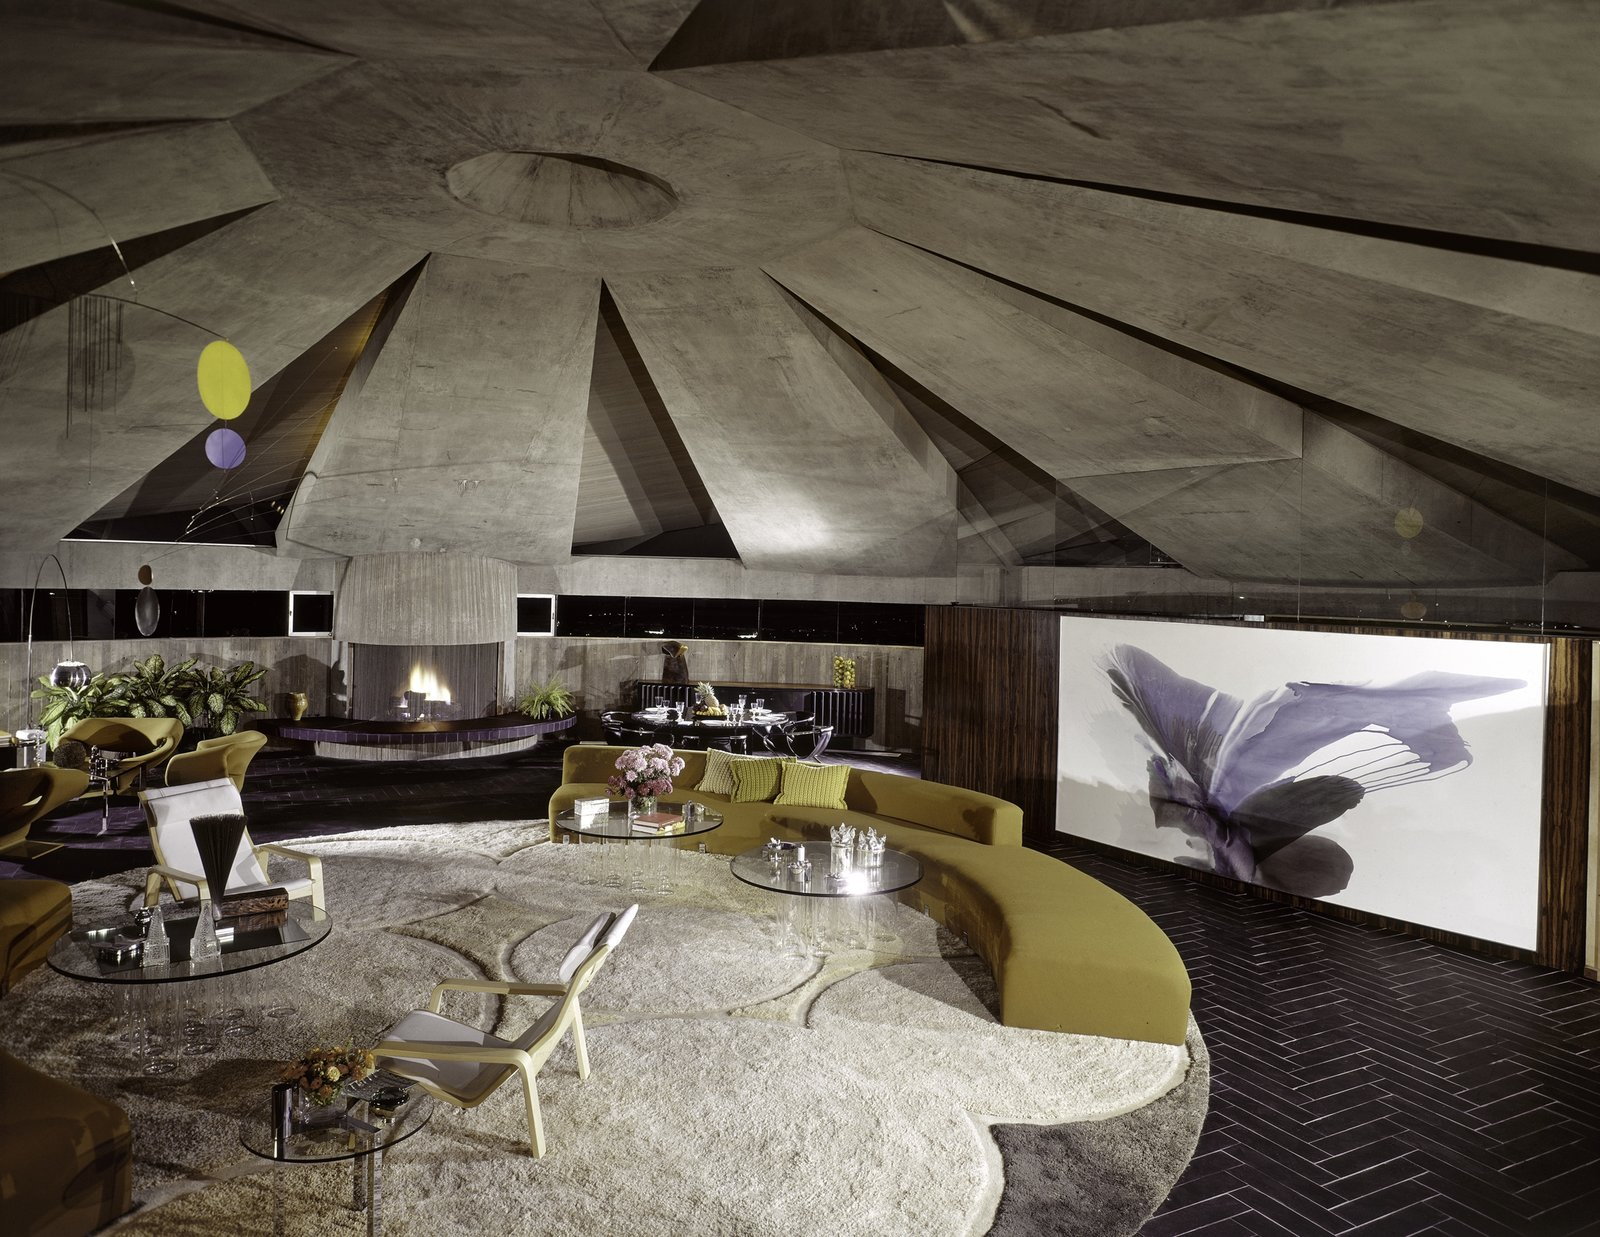 Elrod House, Palm Springs, CA - John Lautner, 1968